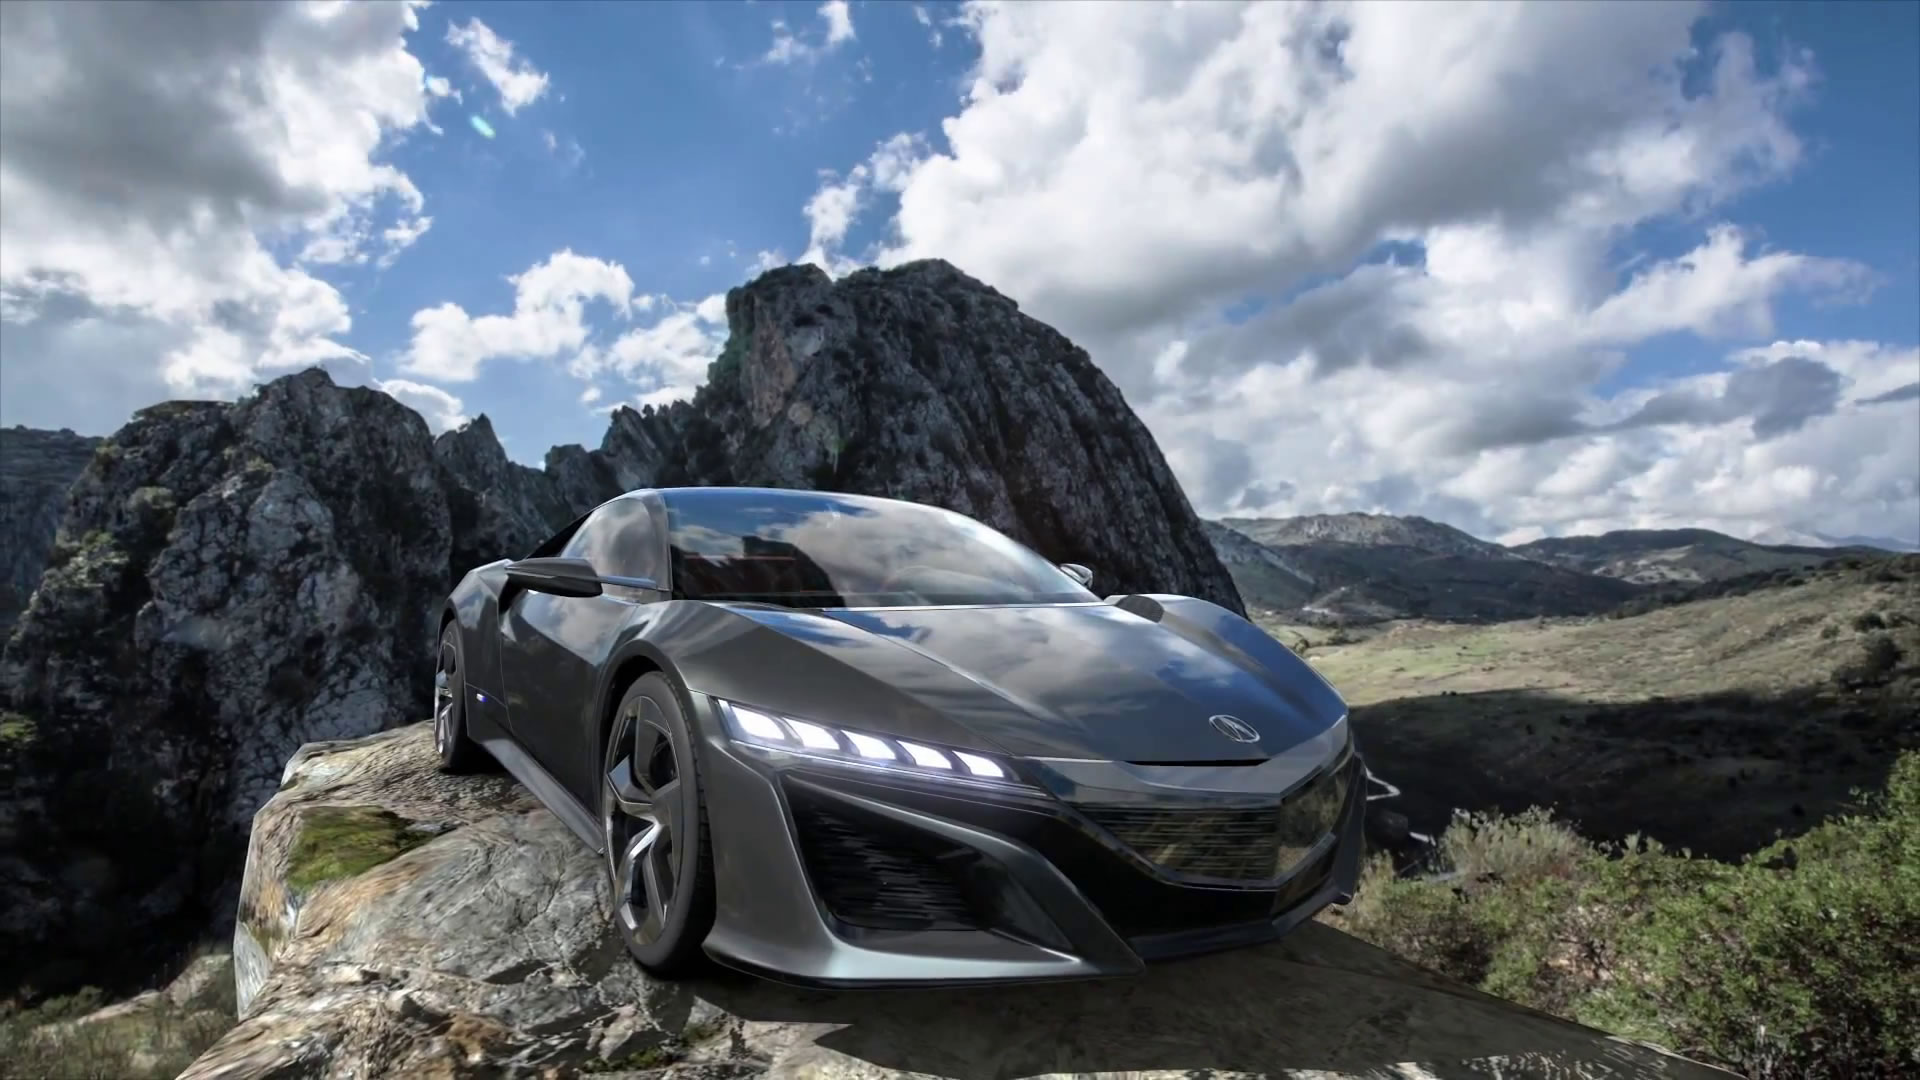 Polyphony Digital reveals new Acura NSX Concept promo reel